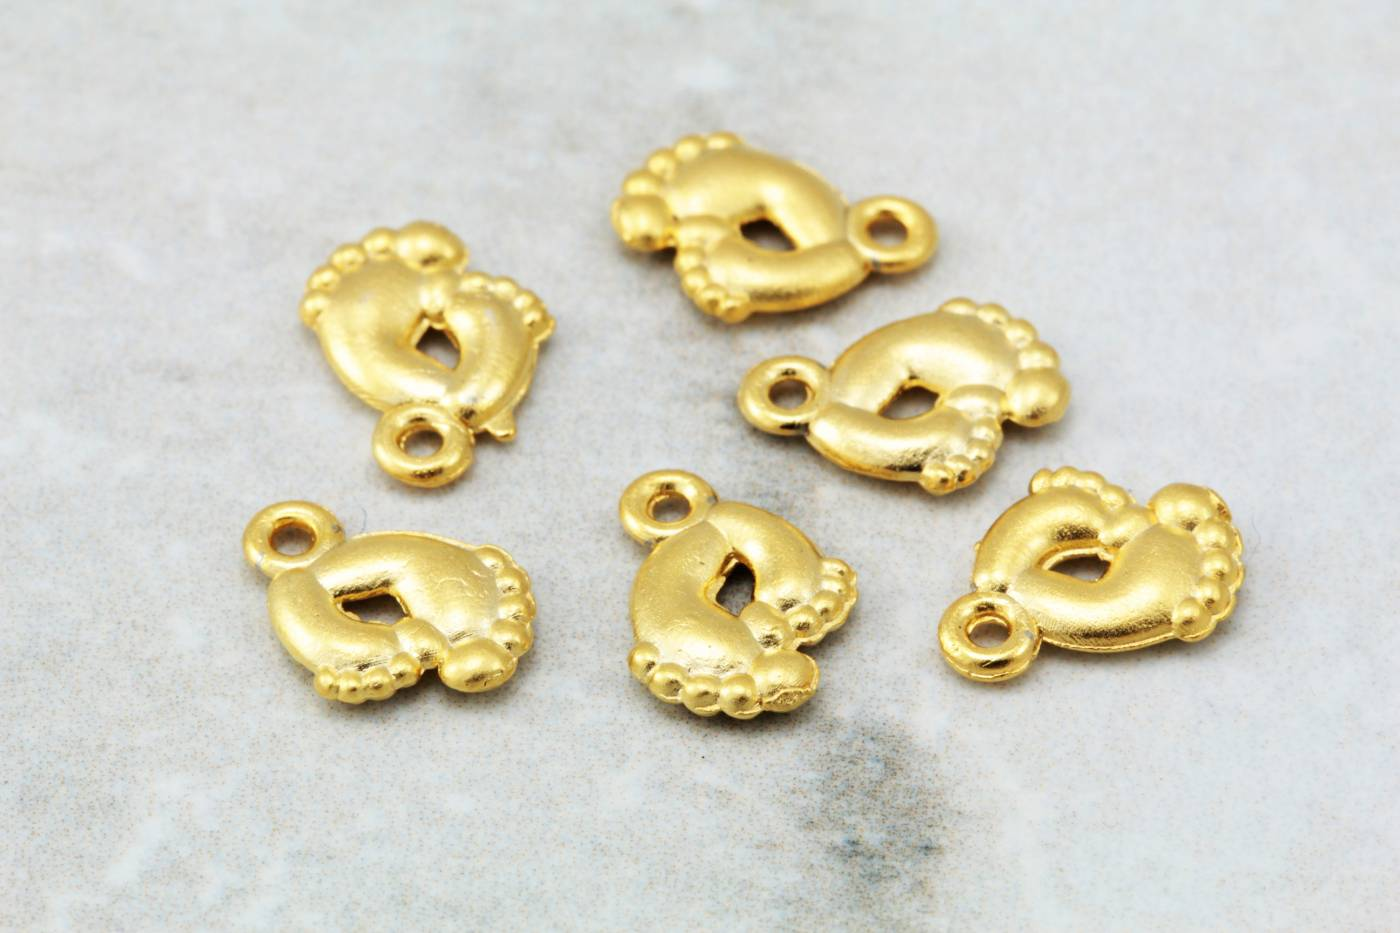 gold-plated-jewelry-making-pendant-charm.jpg